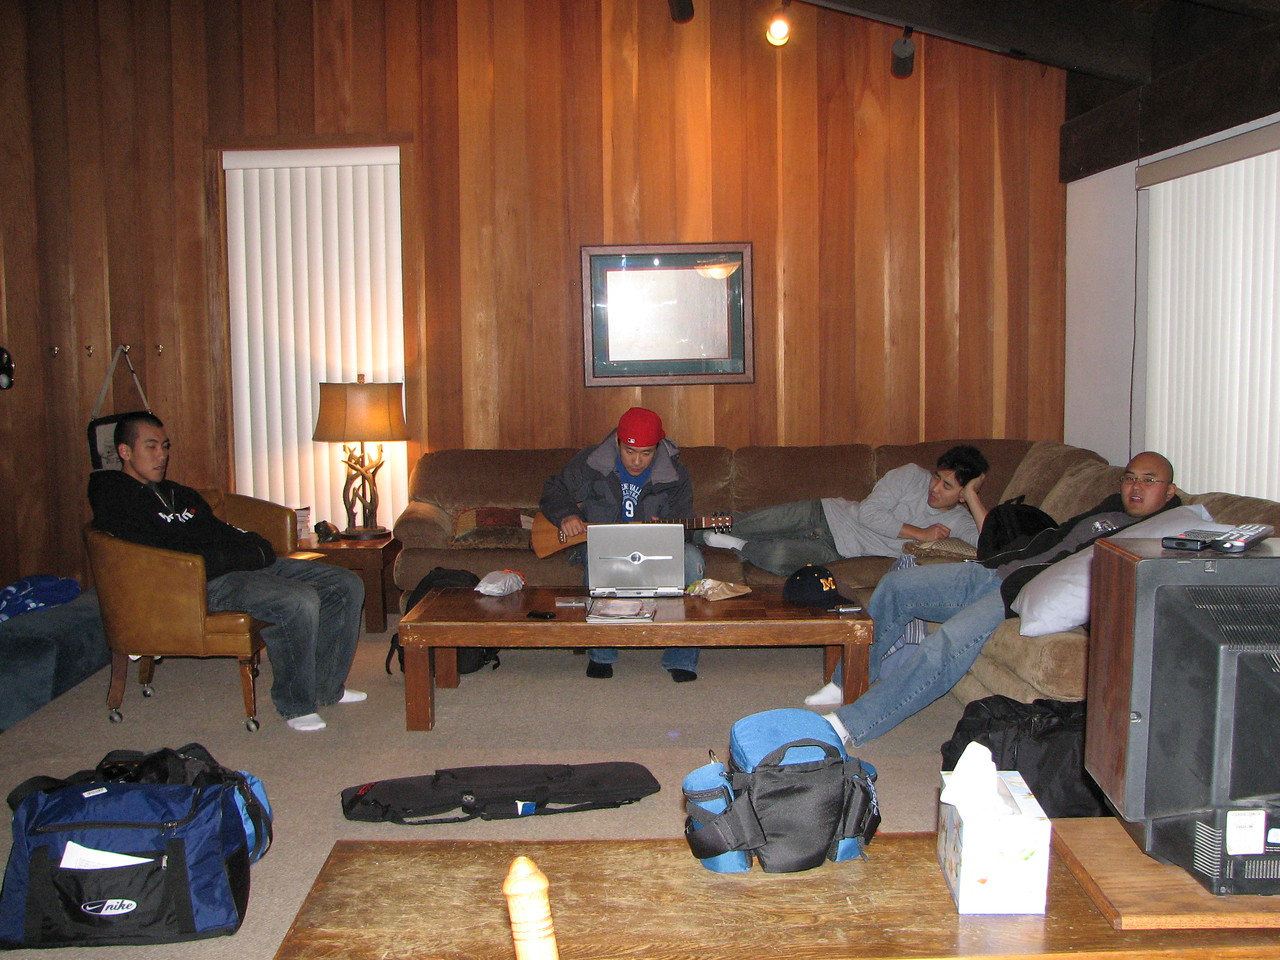 2007 01 05 Fri - Scott Chow's cabin - Scott Chow, Brian Suh, John, & Chris Ko Chillin' like villains in la salle de livin' 2